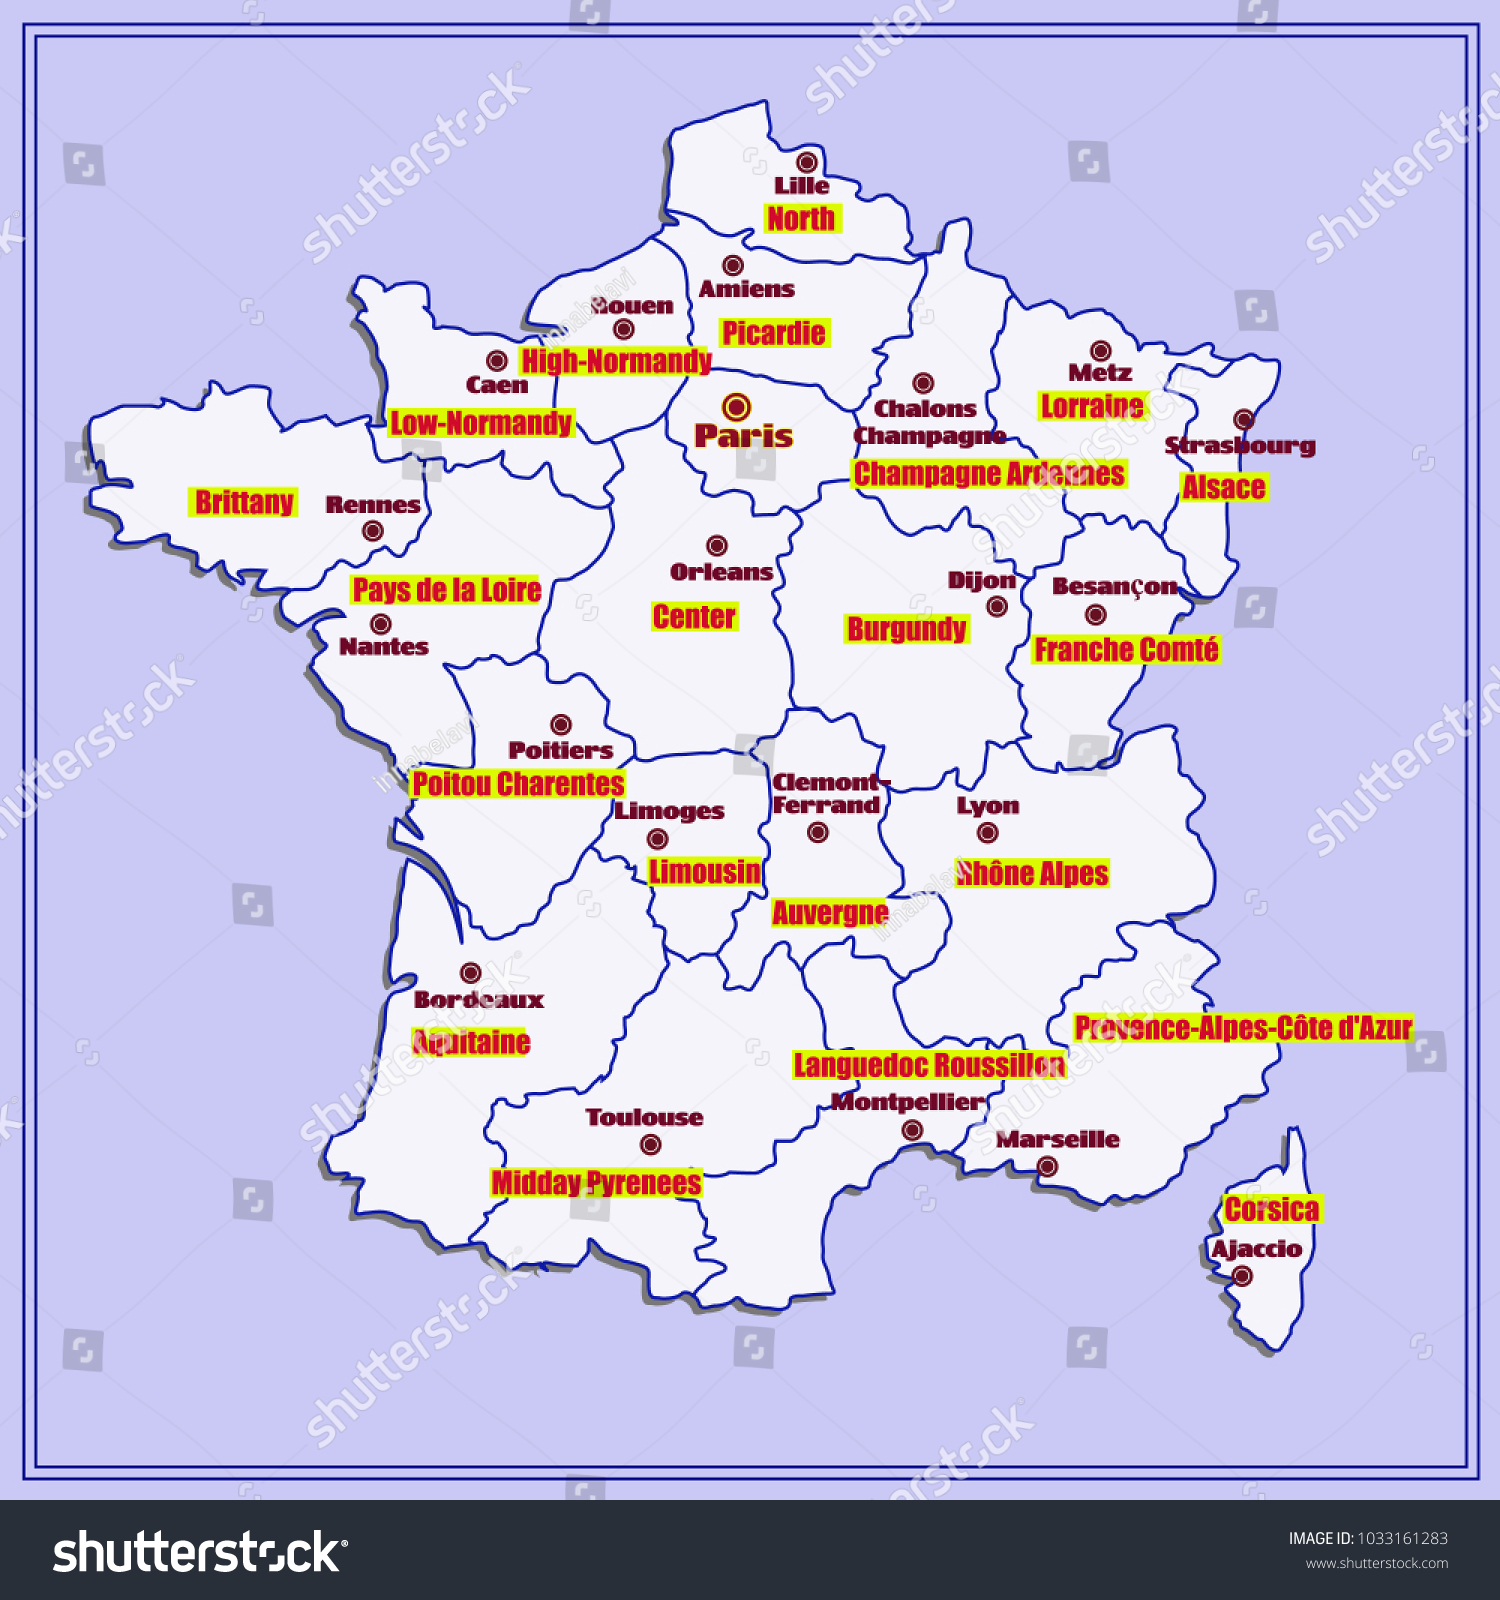 Map Of Major Cities In France.Map France Bright Illustration Map Illustration Stock Illustration